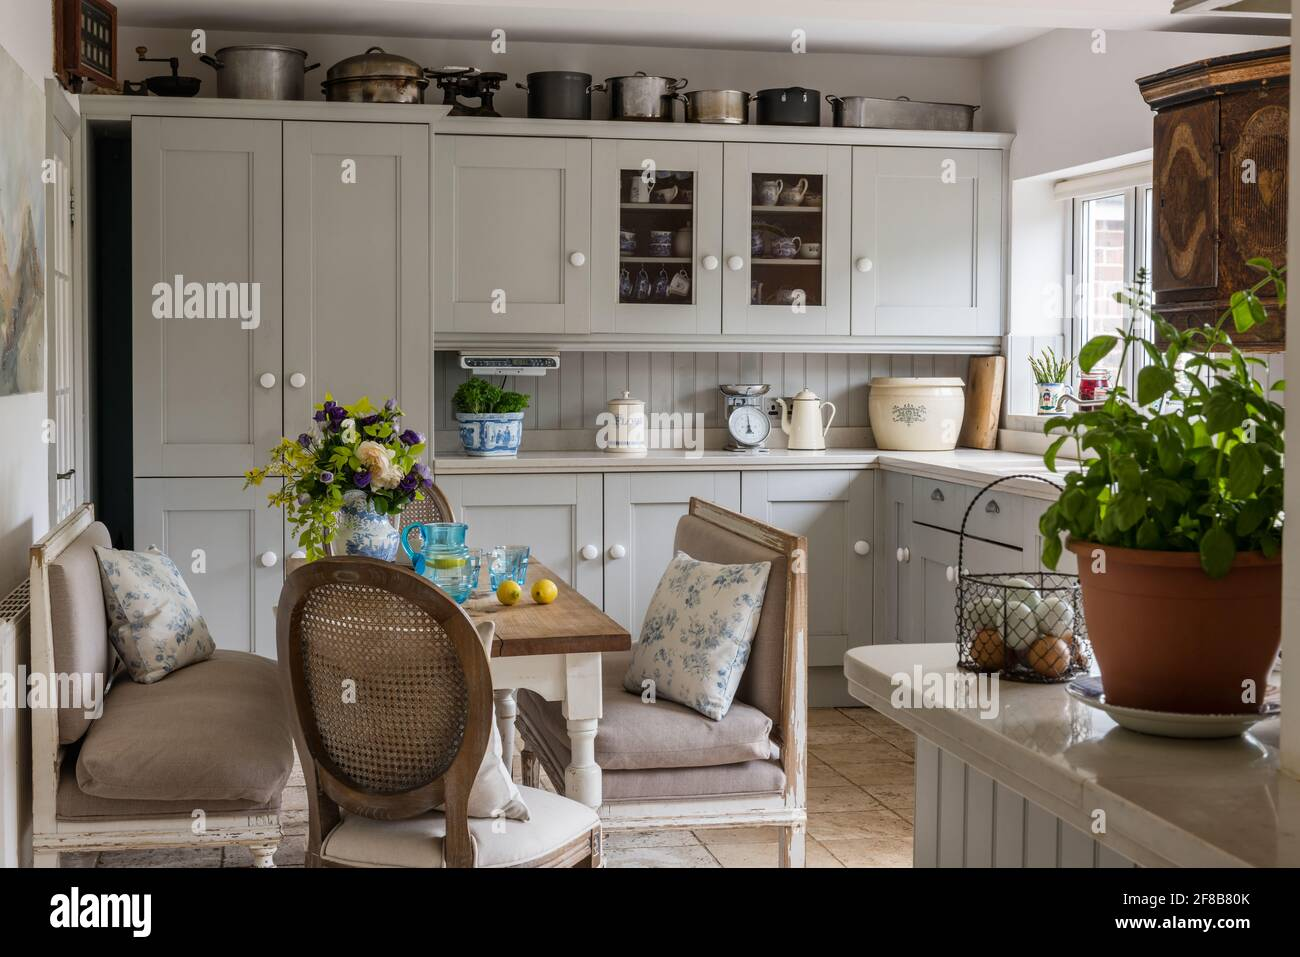 Shaker style kitchen with Gustavian benches in 1930s West Sussex coastal renovation. Stock Photo